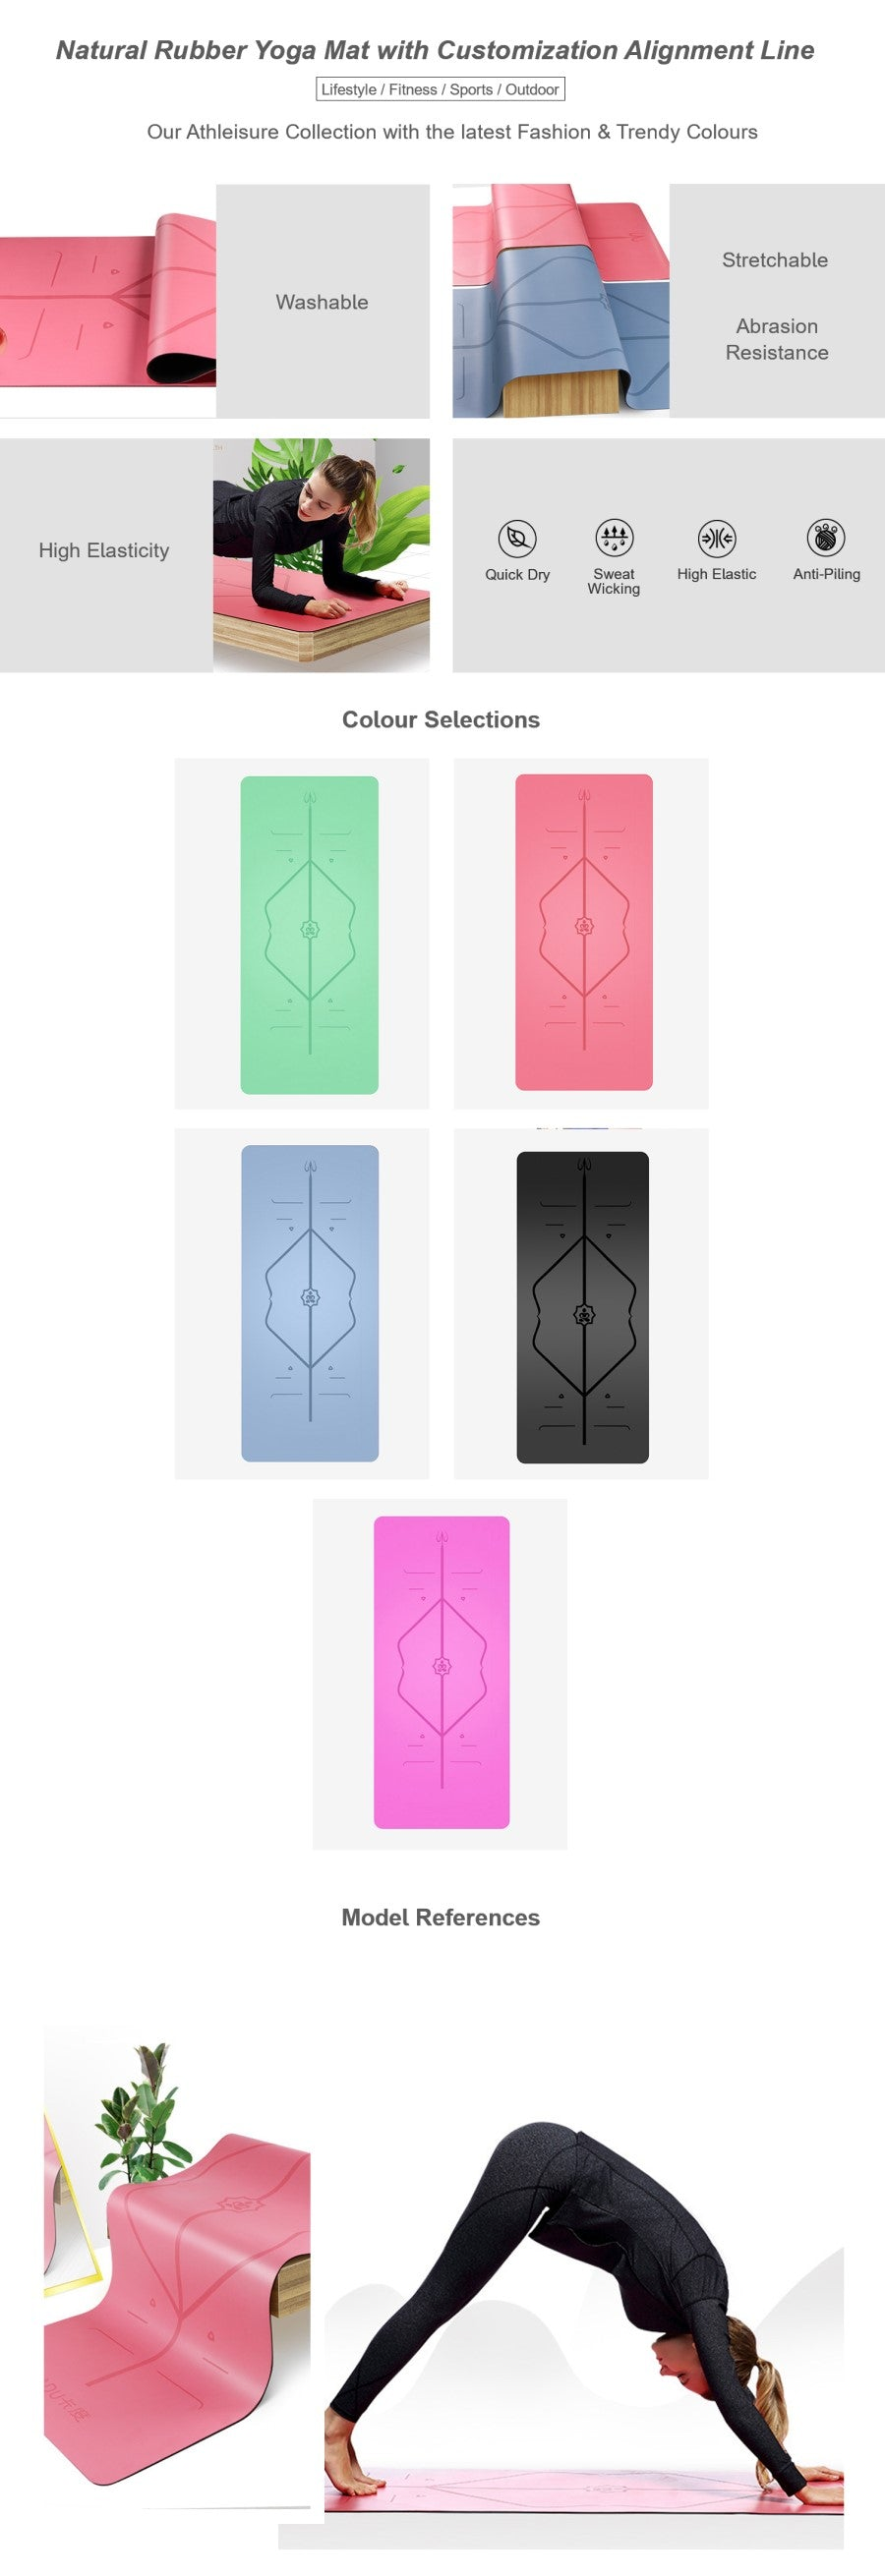 Natural Rubber Yoga Mat with Customization Alignment Line